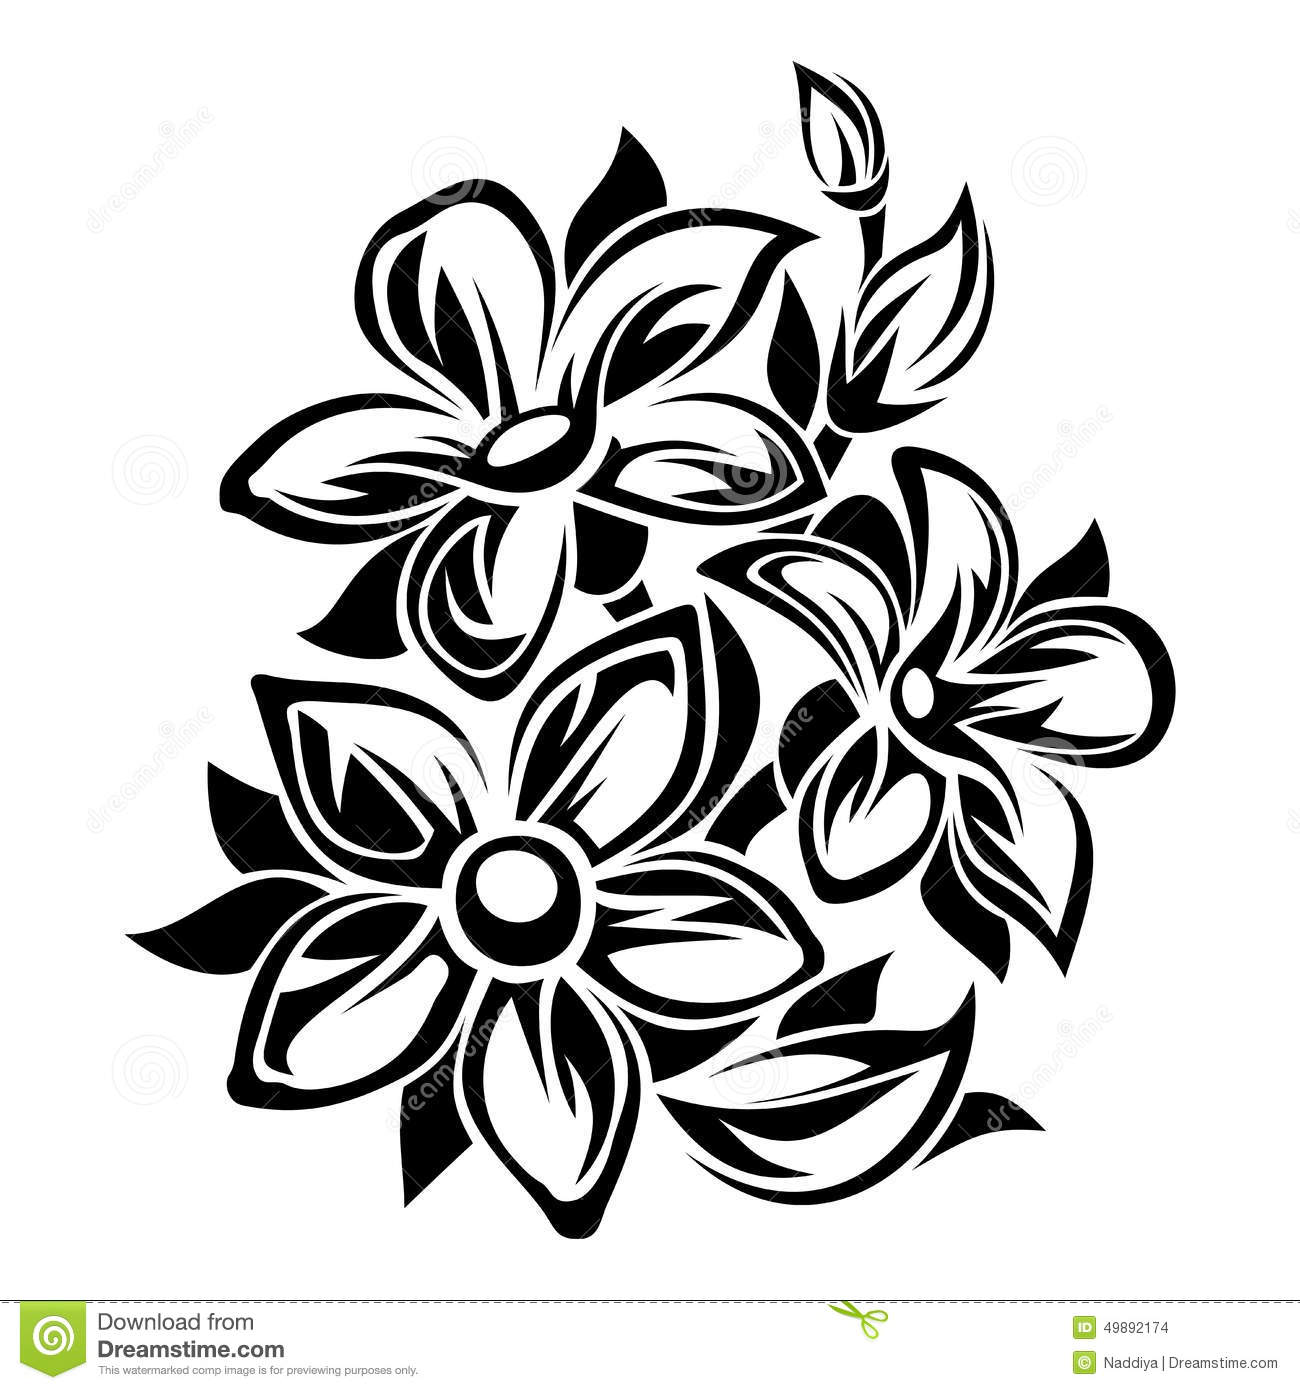 Flowers Black And White Ornament Vector Illustration Illustration